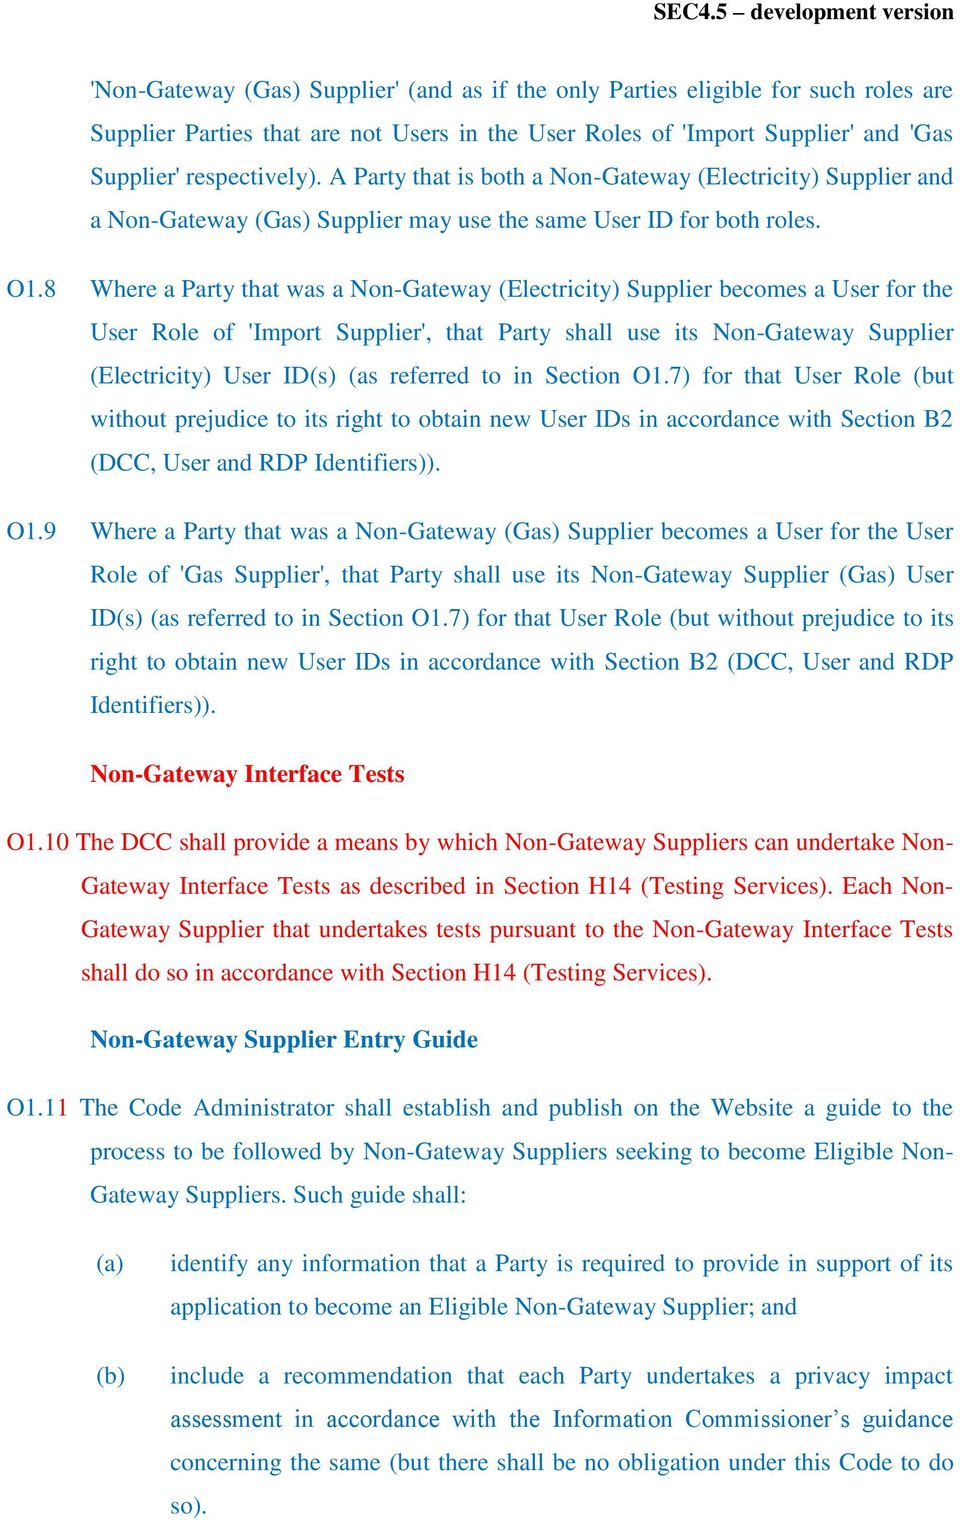 8 Where a Party that was a Non-Gateway (Electricity) Supplier becomes a User for the User Role of 'Import Supplier', that Party shall use its Non-Gateway Supplier (Electricity) User ID(s) (as